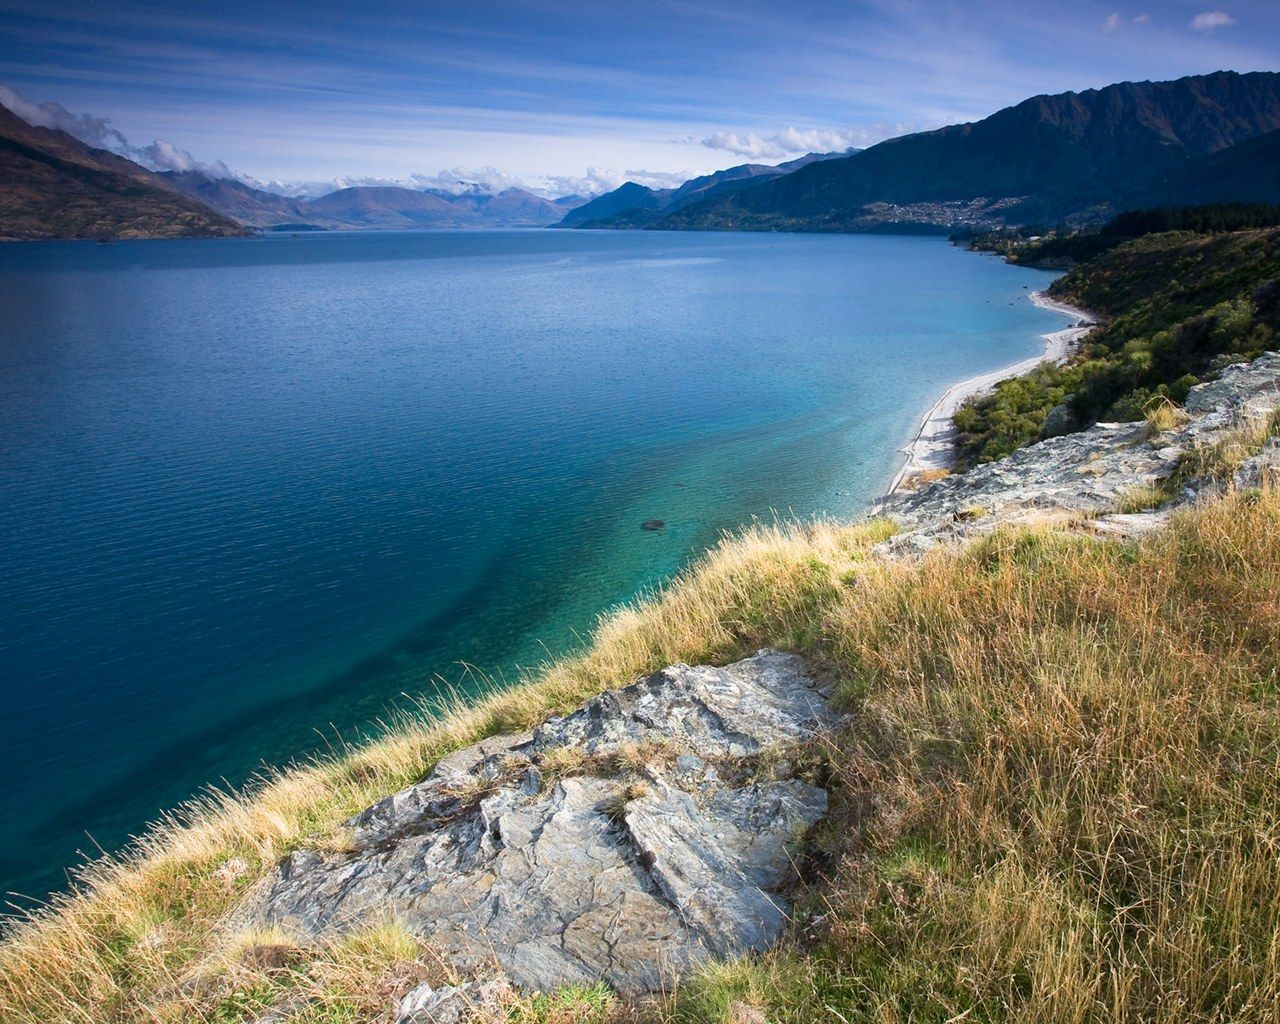 New Zealand Landscapes: Queenstown  | New Zealand Scenery, New Zealand Landscape photogrphy 1280*1024 NO.25 ...